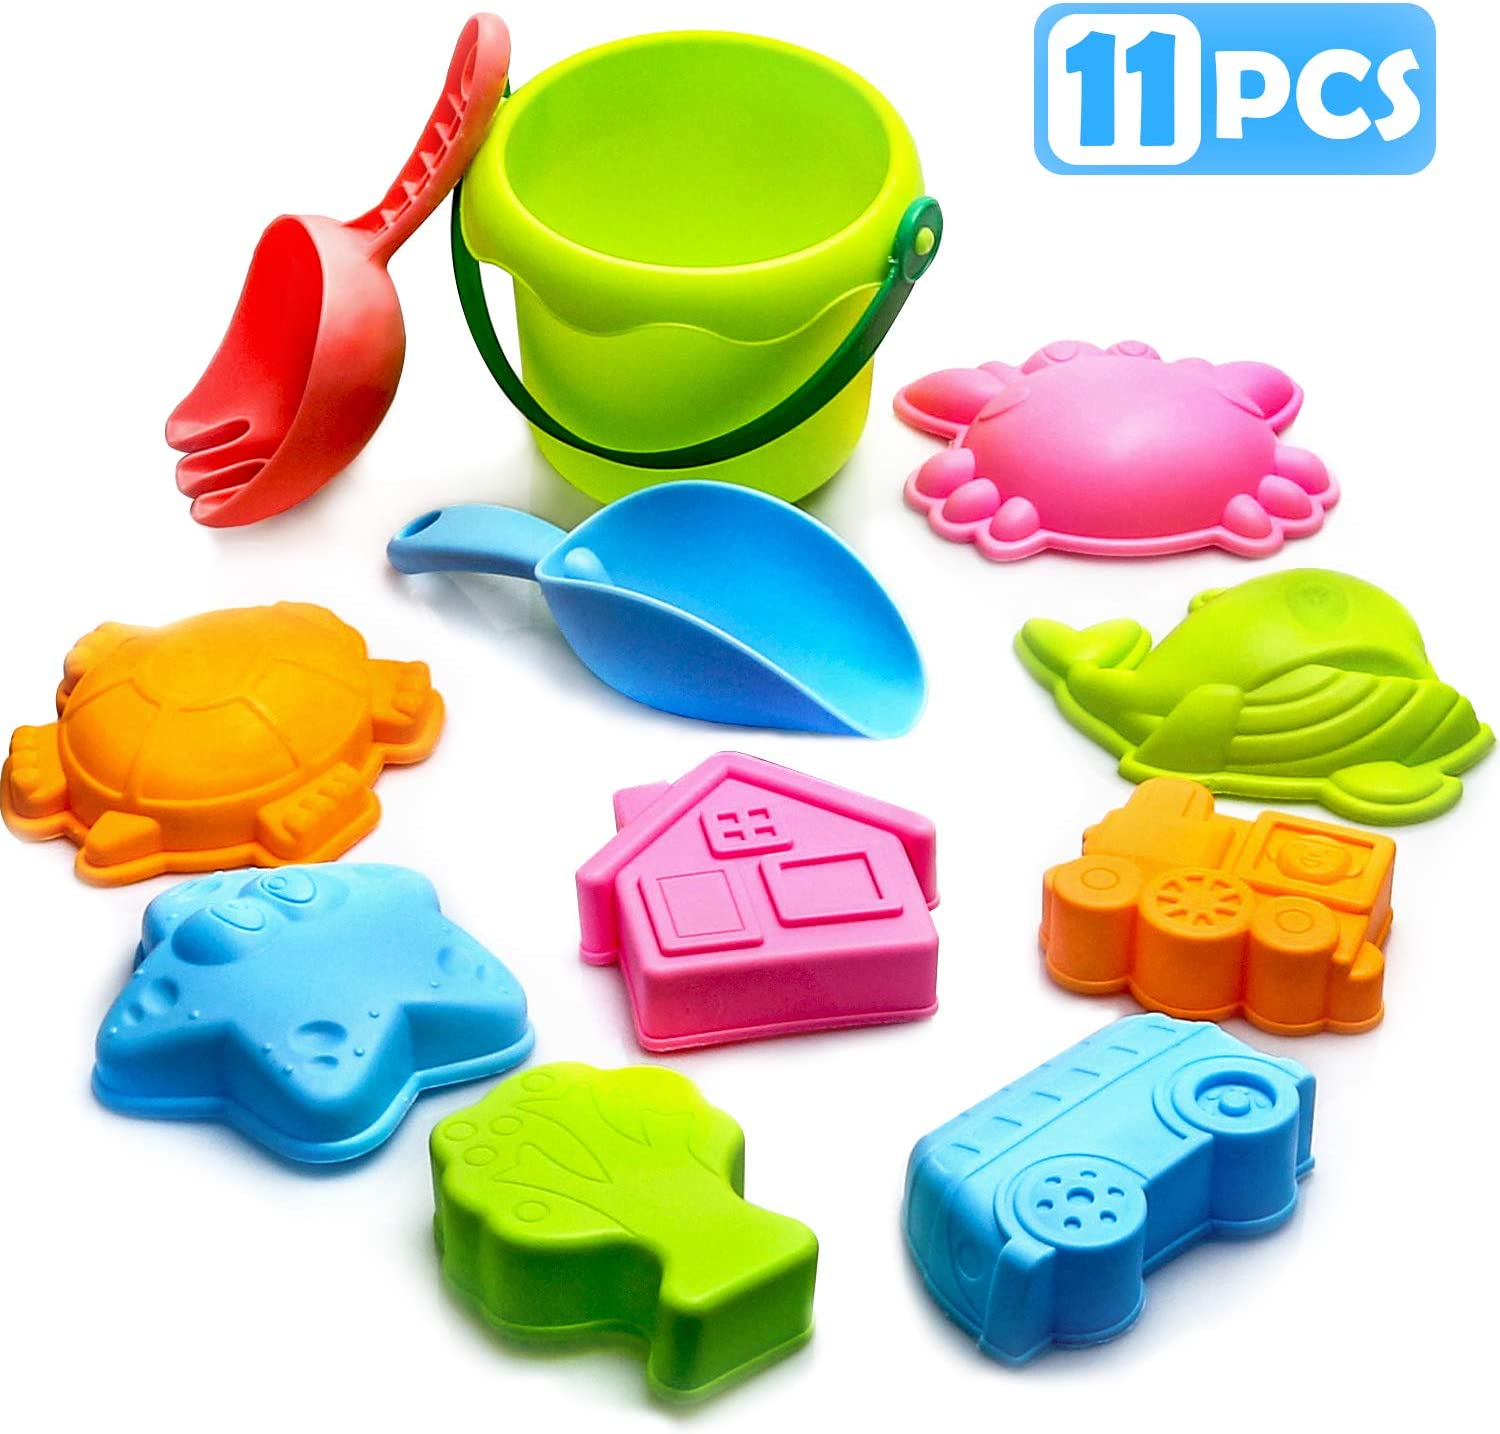 Beach Sand Toys Set 11pcs Sand Molds Bucket and Shovel Outdoor Sandbox Toys Soft Material Beach Games for Kids Toddlers